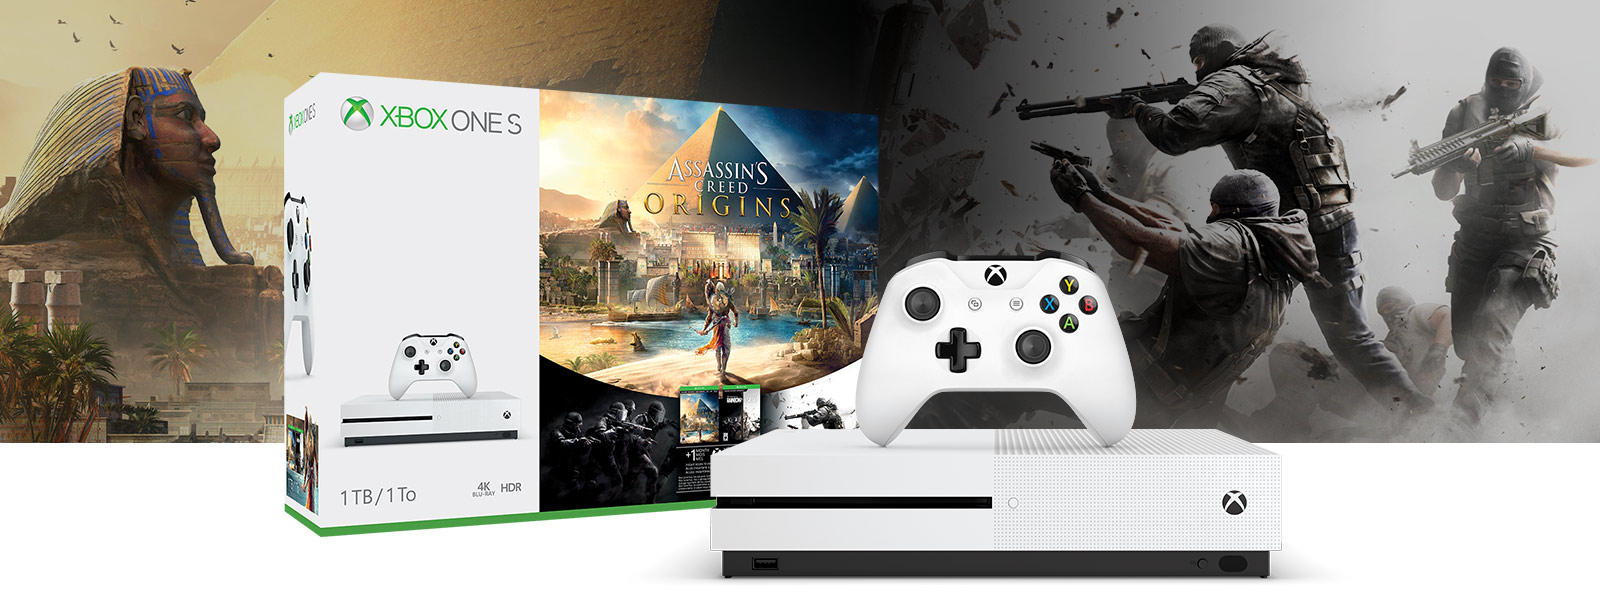 Bonus hry Assassins Creed Origins 1TB Xbox One